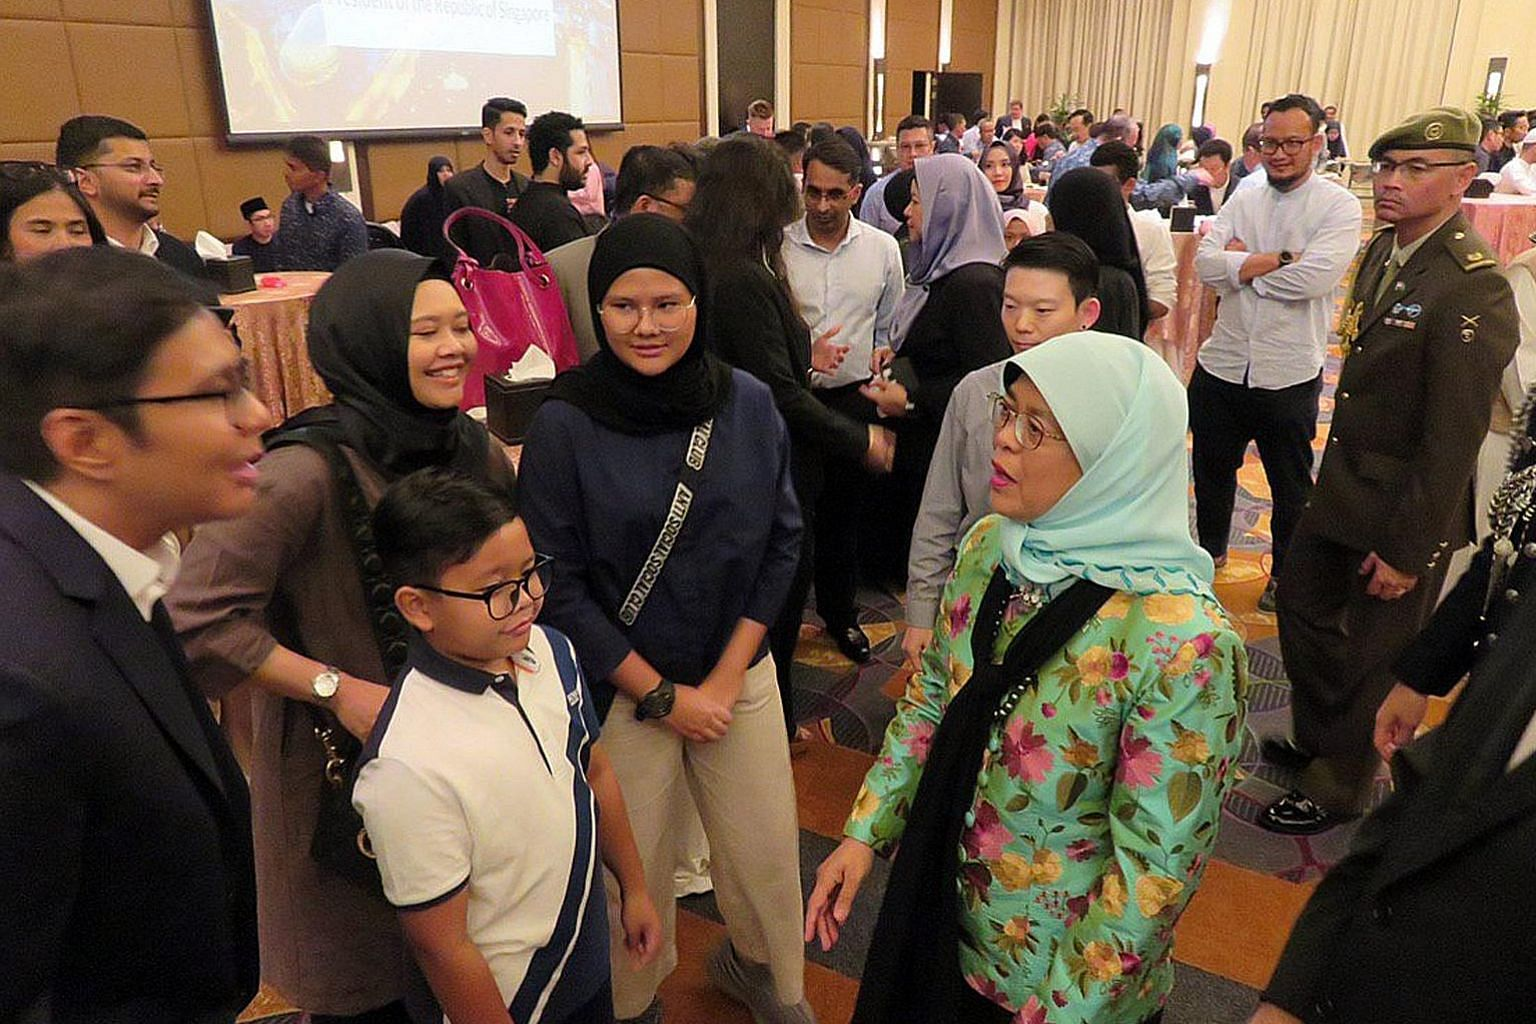 President Halimah Yacob with the Singaporean community in Saudi Arabia at a reception in Jeddah on Thursday. ST PHOTO: FABIAN KOH